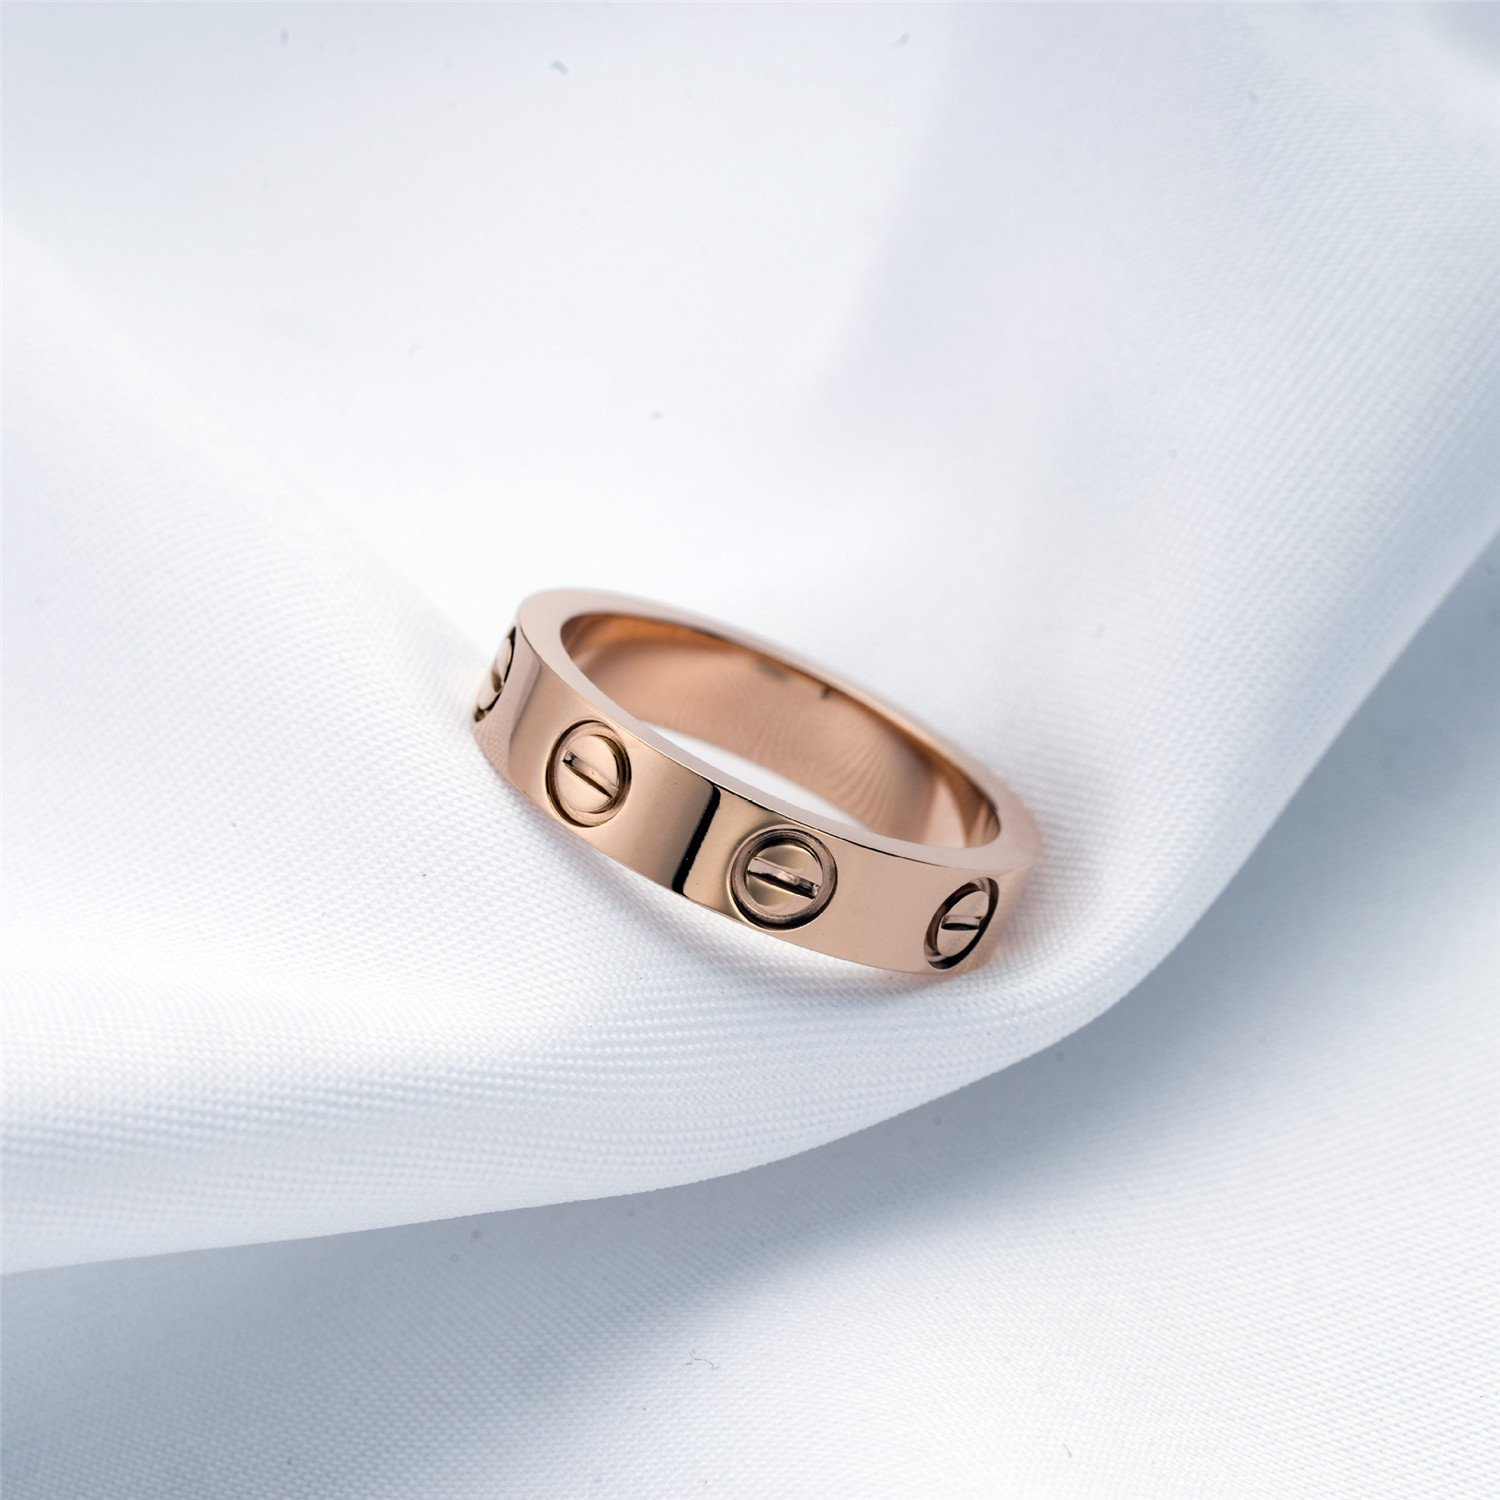 BESTJEW Rose Gold Love Screw Ring Engagement Wedding Couples Band Titanium Stainless Steel Size 9 by BESTJEW (Image #3)